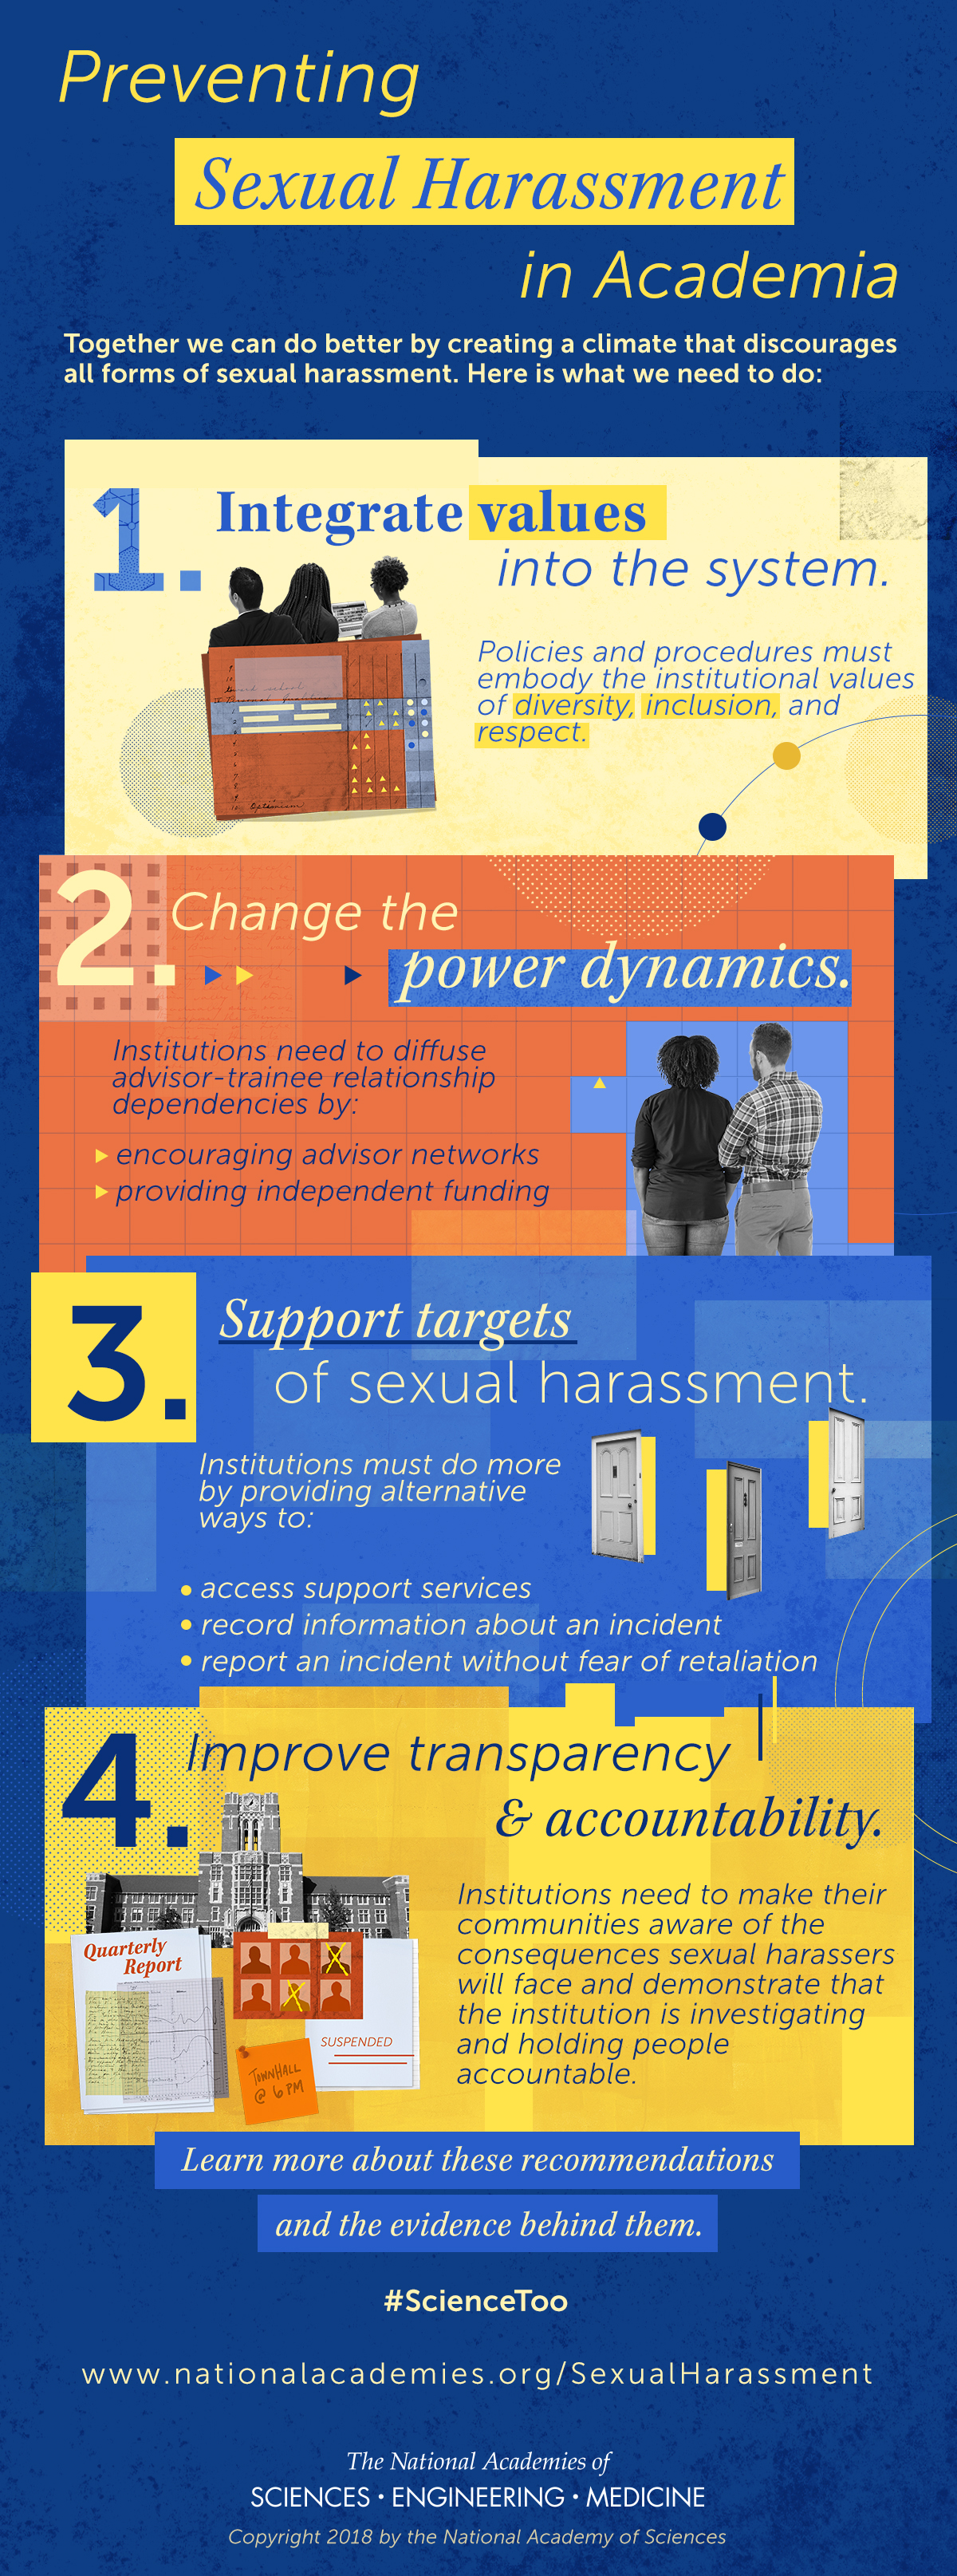 Preventing Sexual Harassment in Academia: Together we can do better by creating a climate that discourages all forms of sexual harassment. Here is what we need to do: 1. Integrate values into the system. Policies and procedures must embody the institutional values of diversity, inclusion and respect. 2. Change the power dynamics. Institutions need to diffuse adviser-trainee relationship dependencies by encouraging adviser networks and providing independent funding. 3. Support targets of sexual harassment. Institutions must do more by providing alternative ways to access support services, record information about an incident, and report an incident without fear of retaliation. 4. Improve transparency and accountability. Institutions need to make their communities aware of the consequences sexual harassers will face and demonstrate that the institution is investigating and holding people accountable. Learn more about these recommendations and the evidence behind them. #ScienceToo""